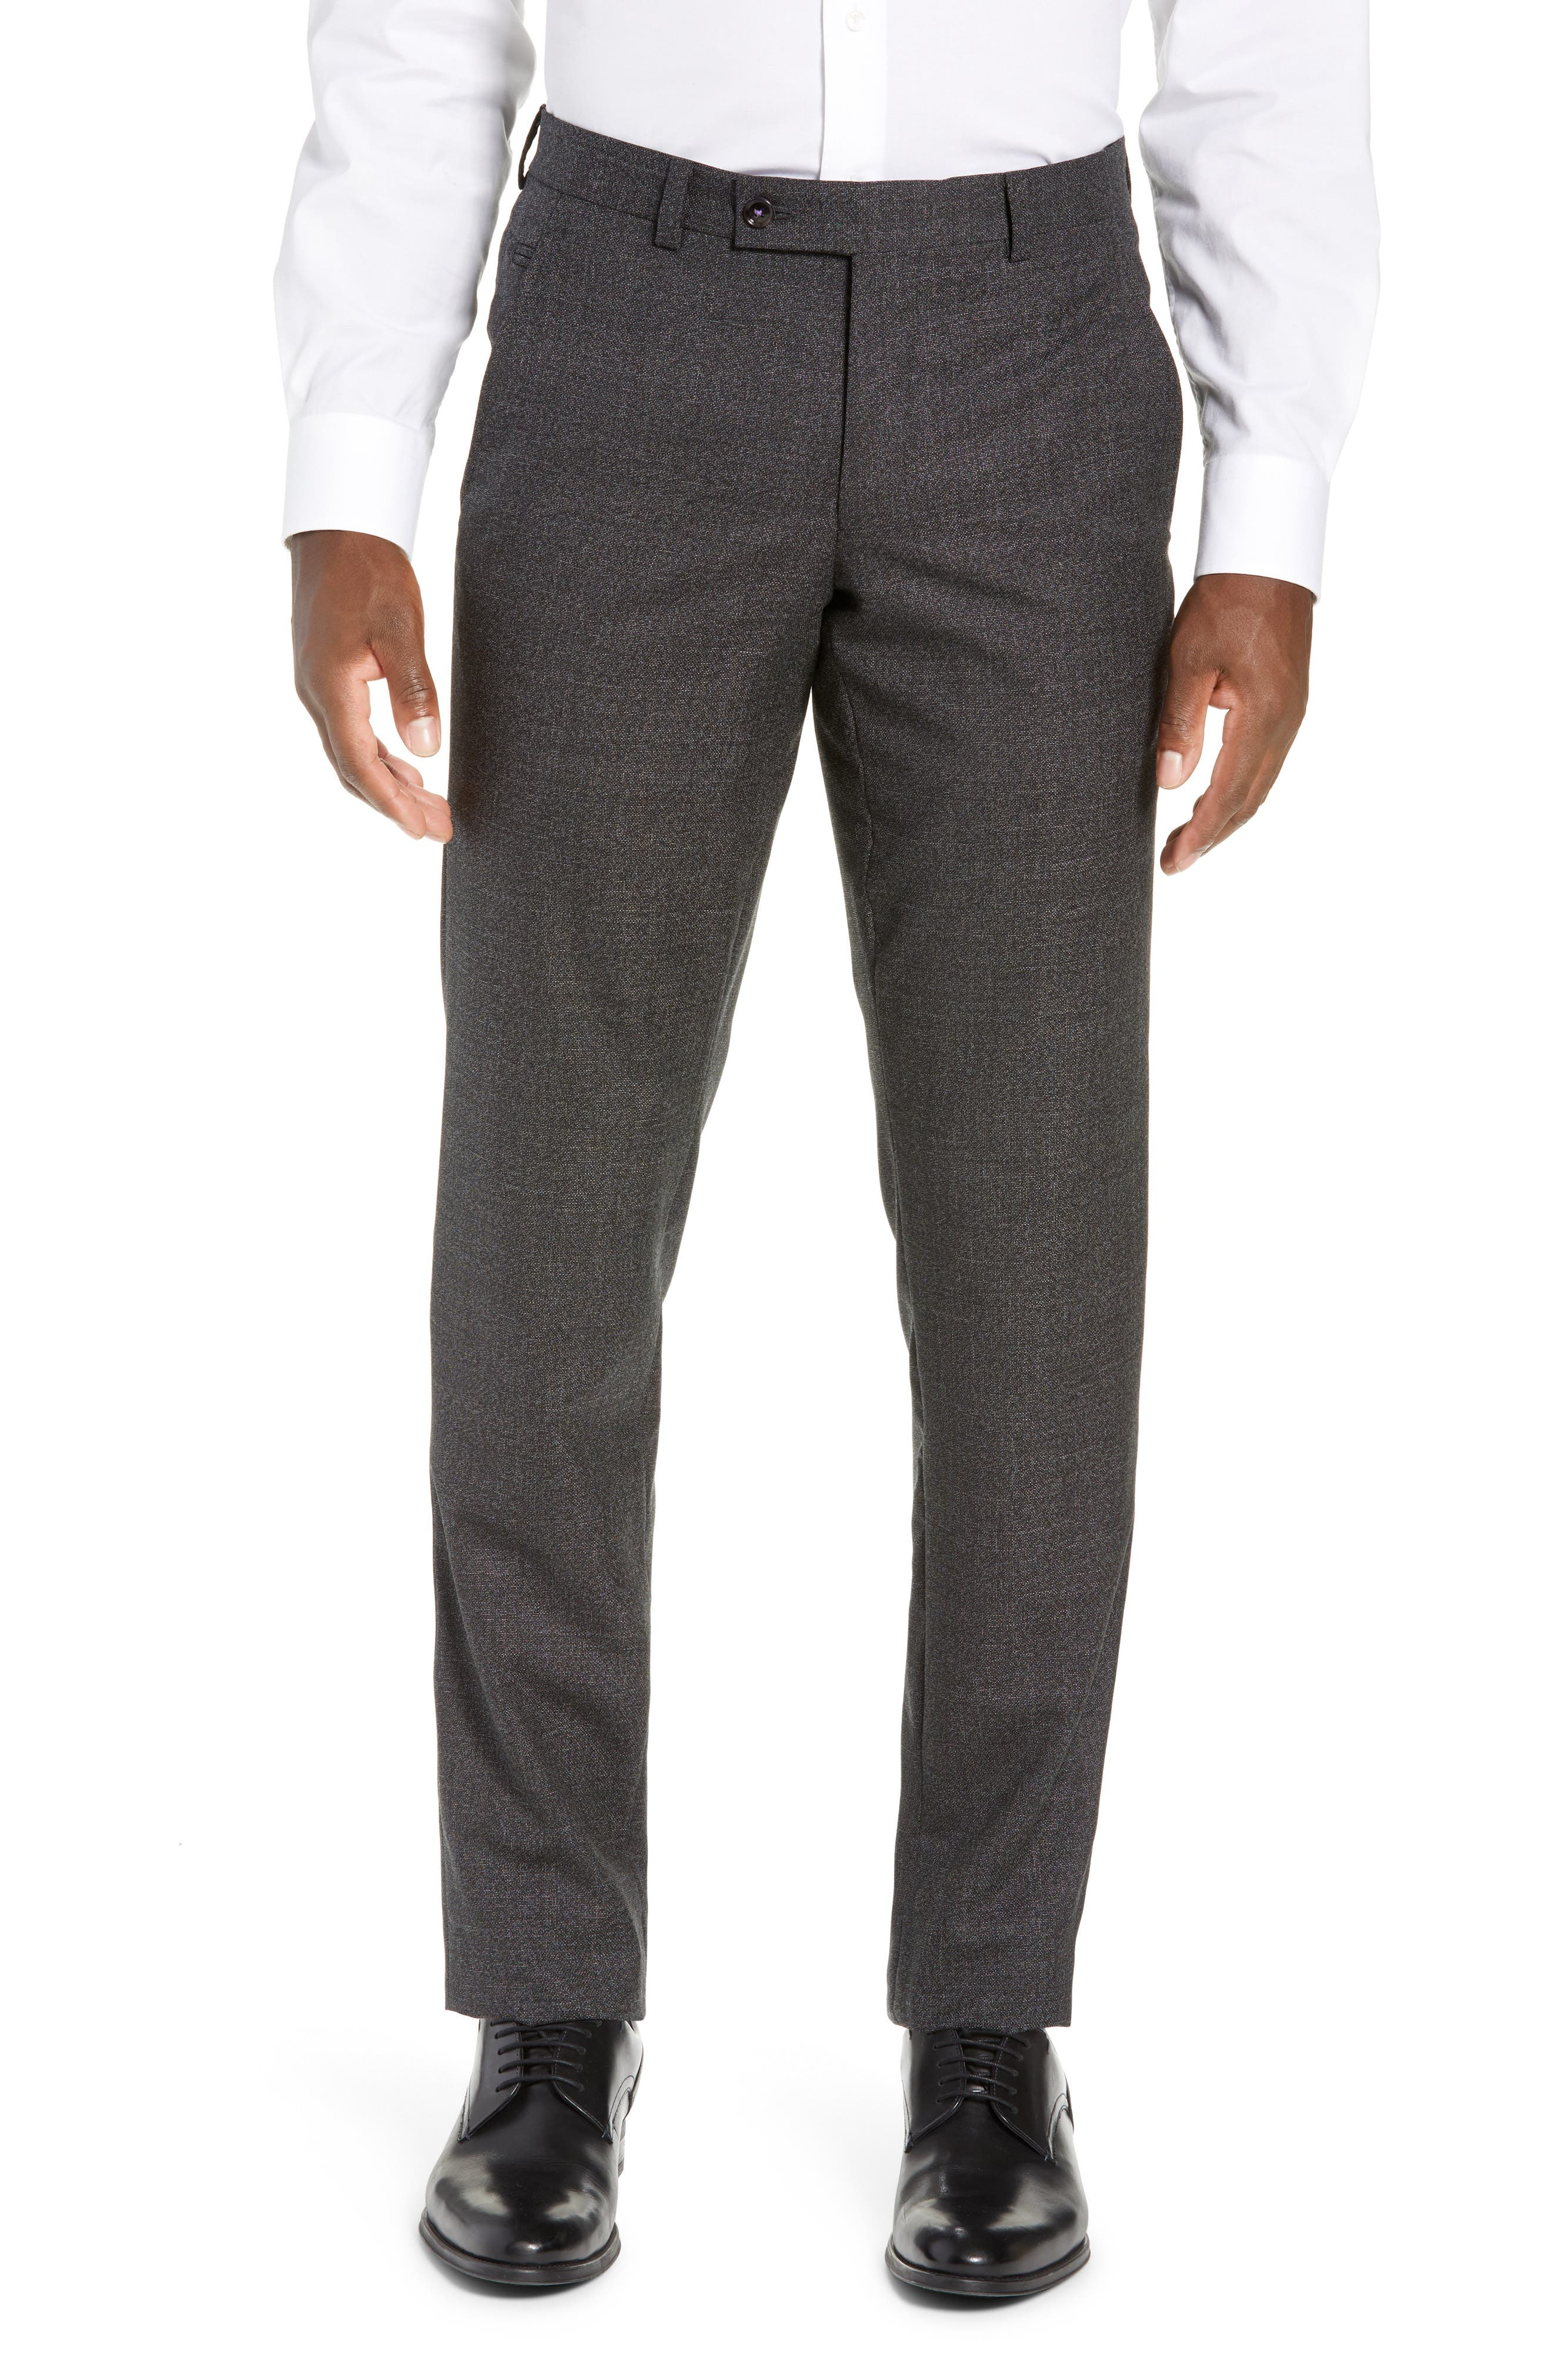 TED BAKER LONDON, Jerome Flat Front Solid Wool Trousers, Main thumbnail 1, color, CHARCOAL